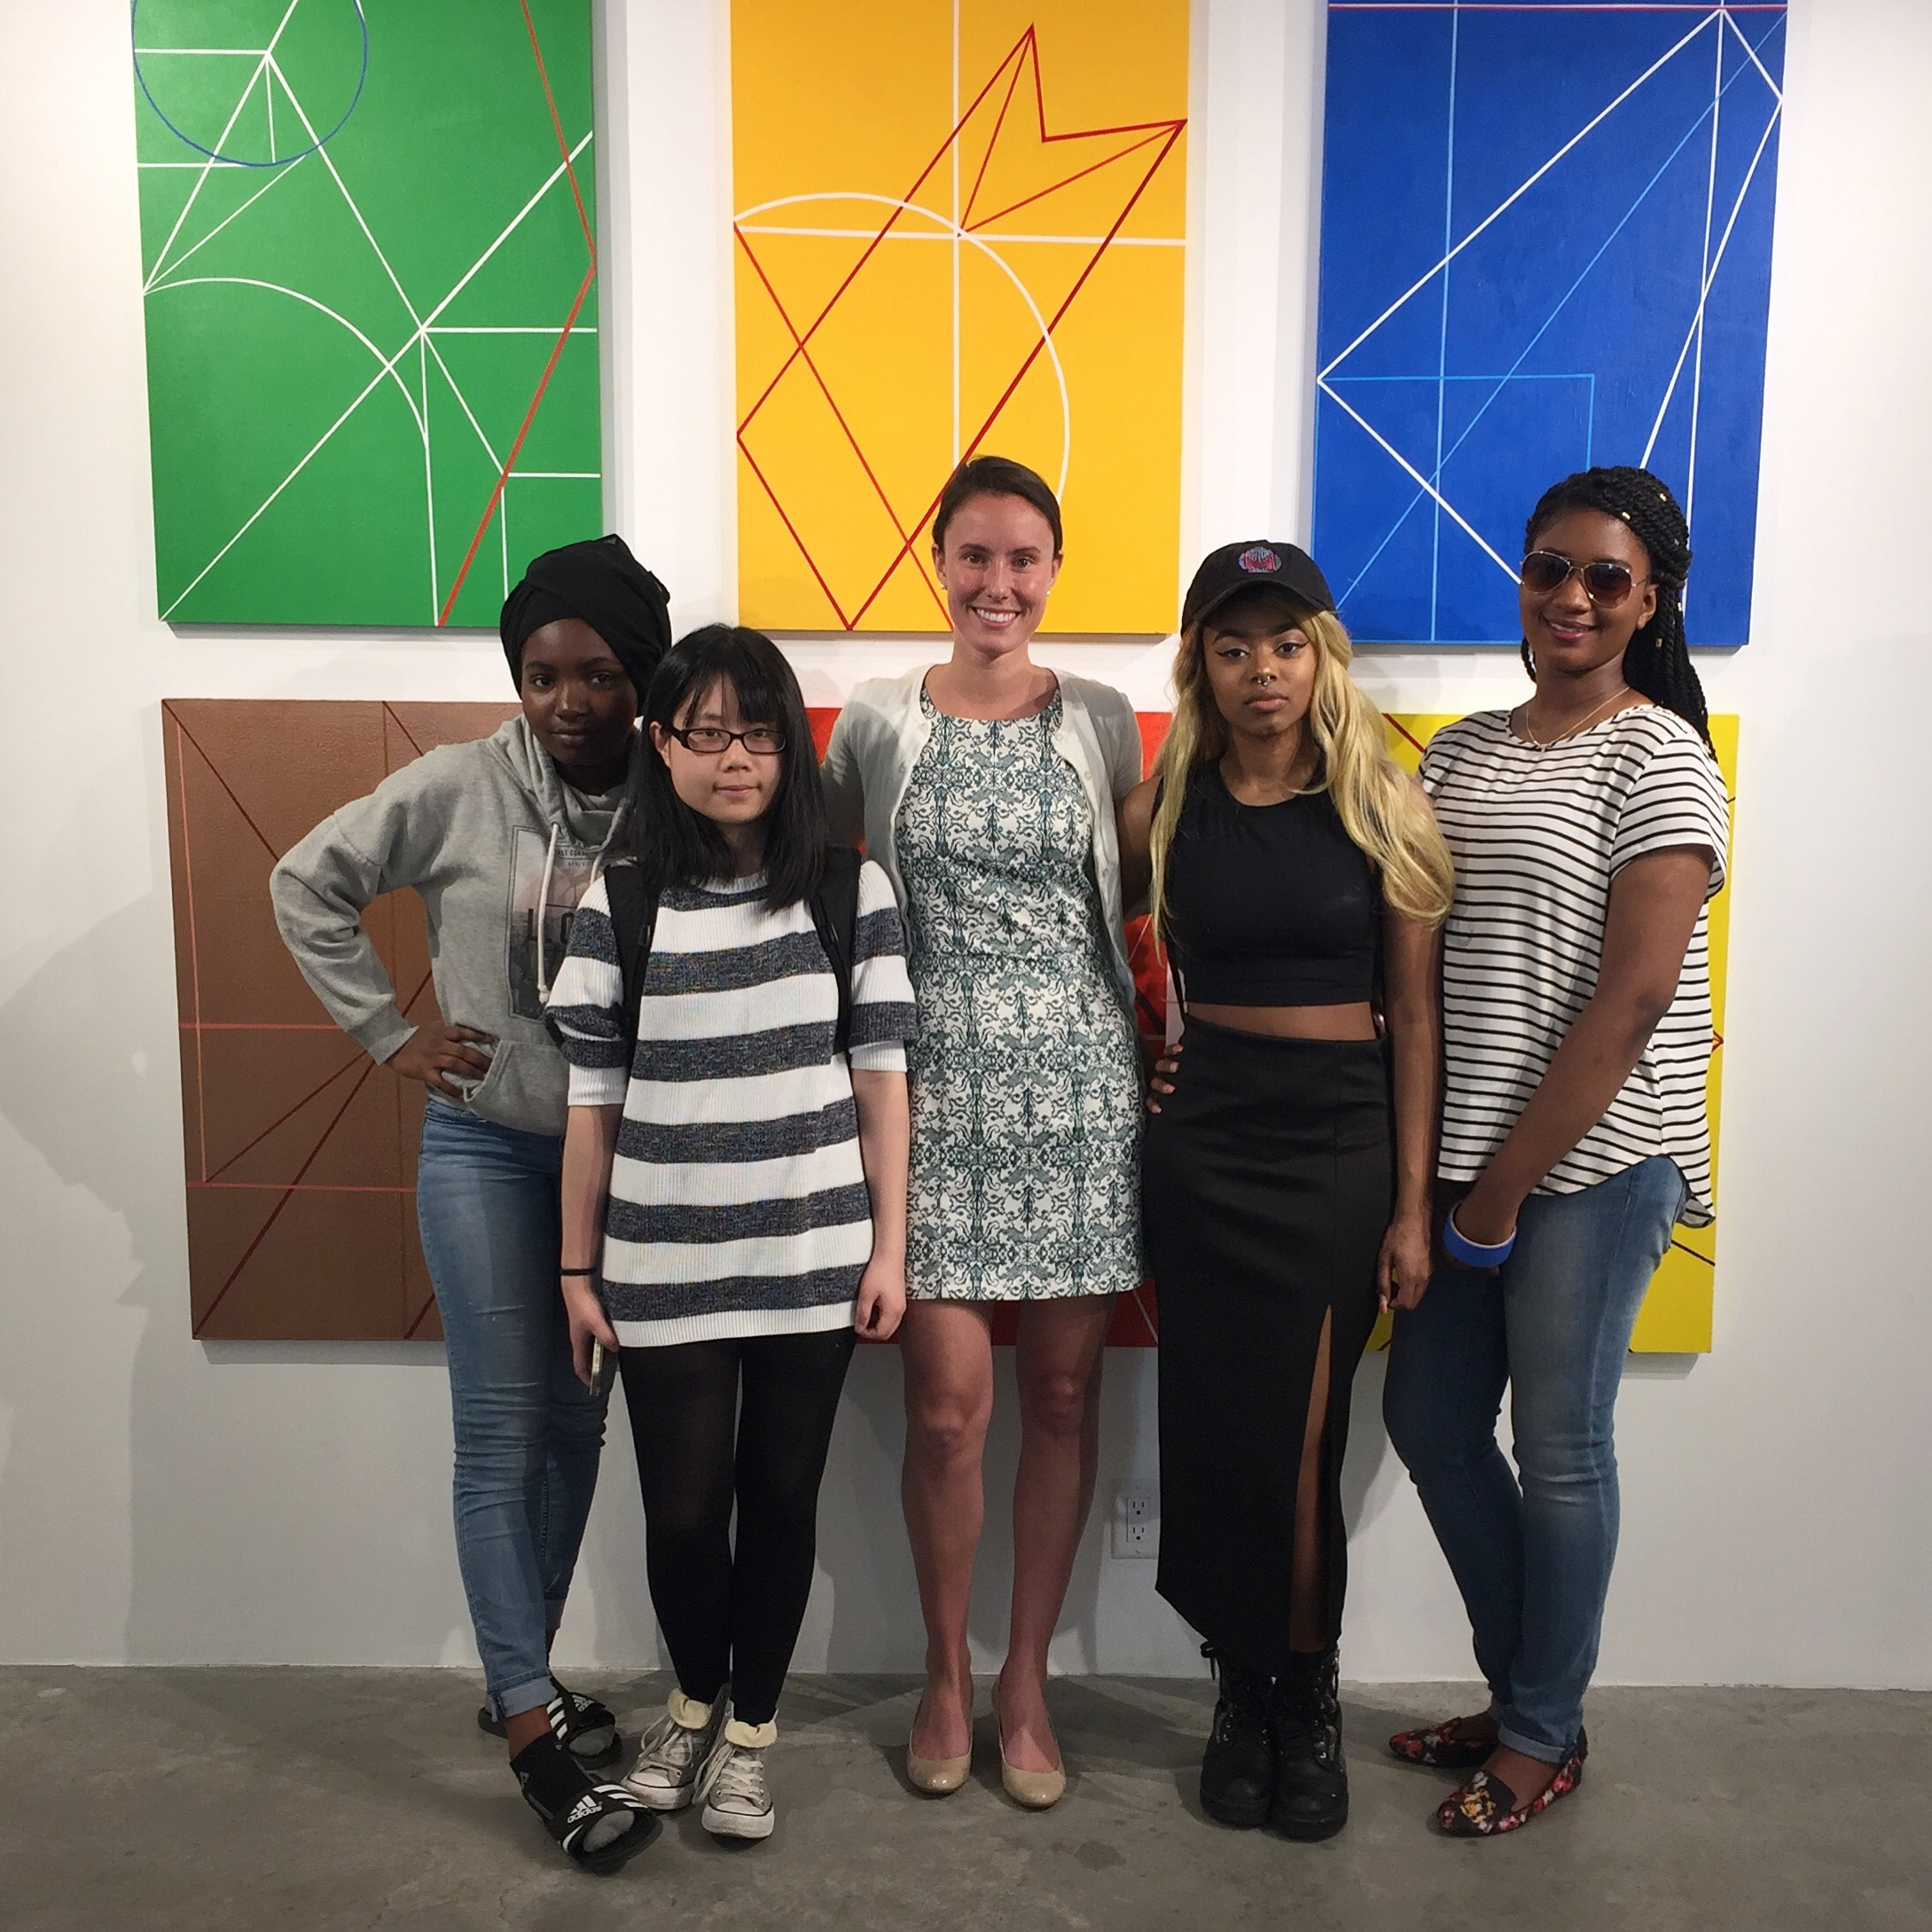 Our gallery director, Abigail Ogilvy, and AFH teens in front of their artwork